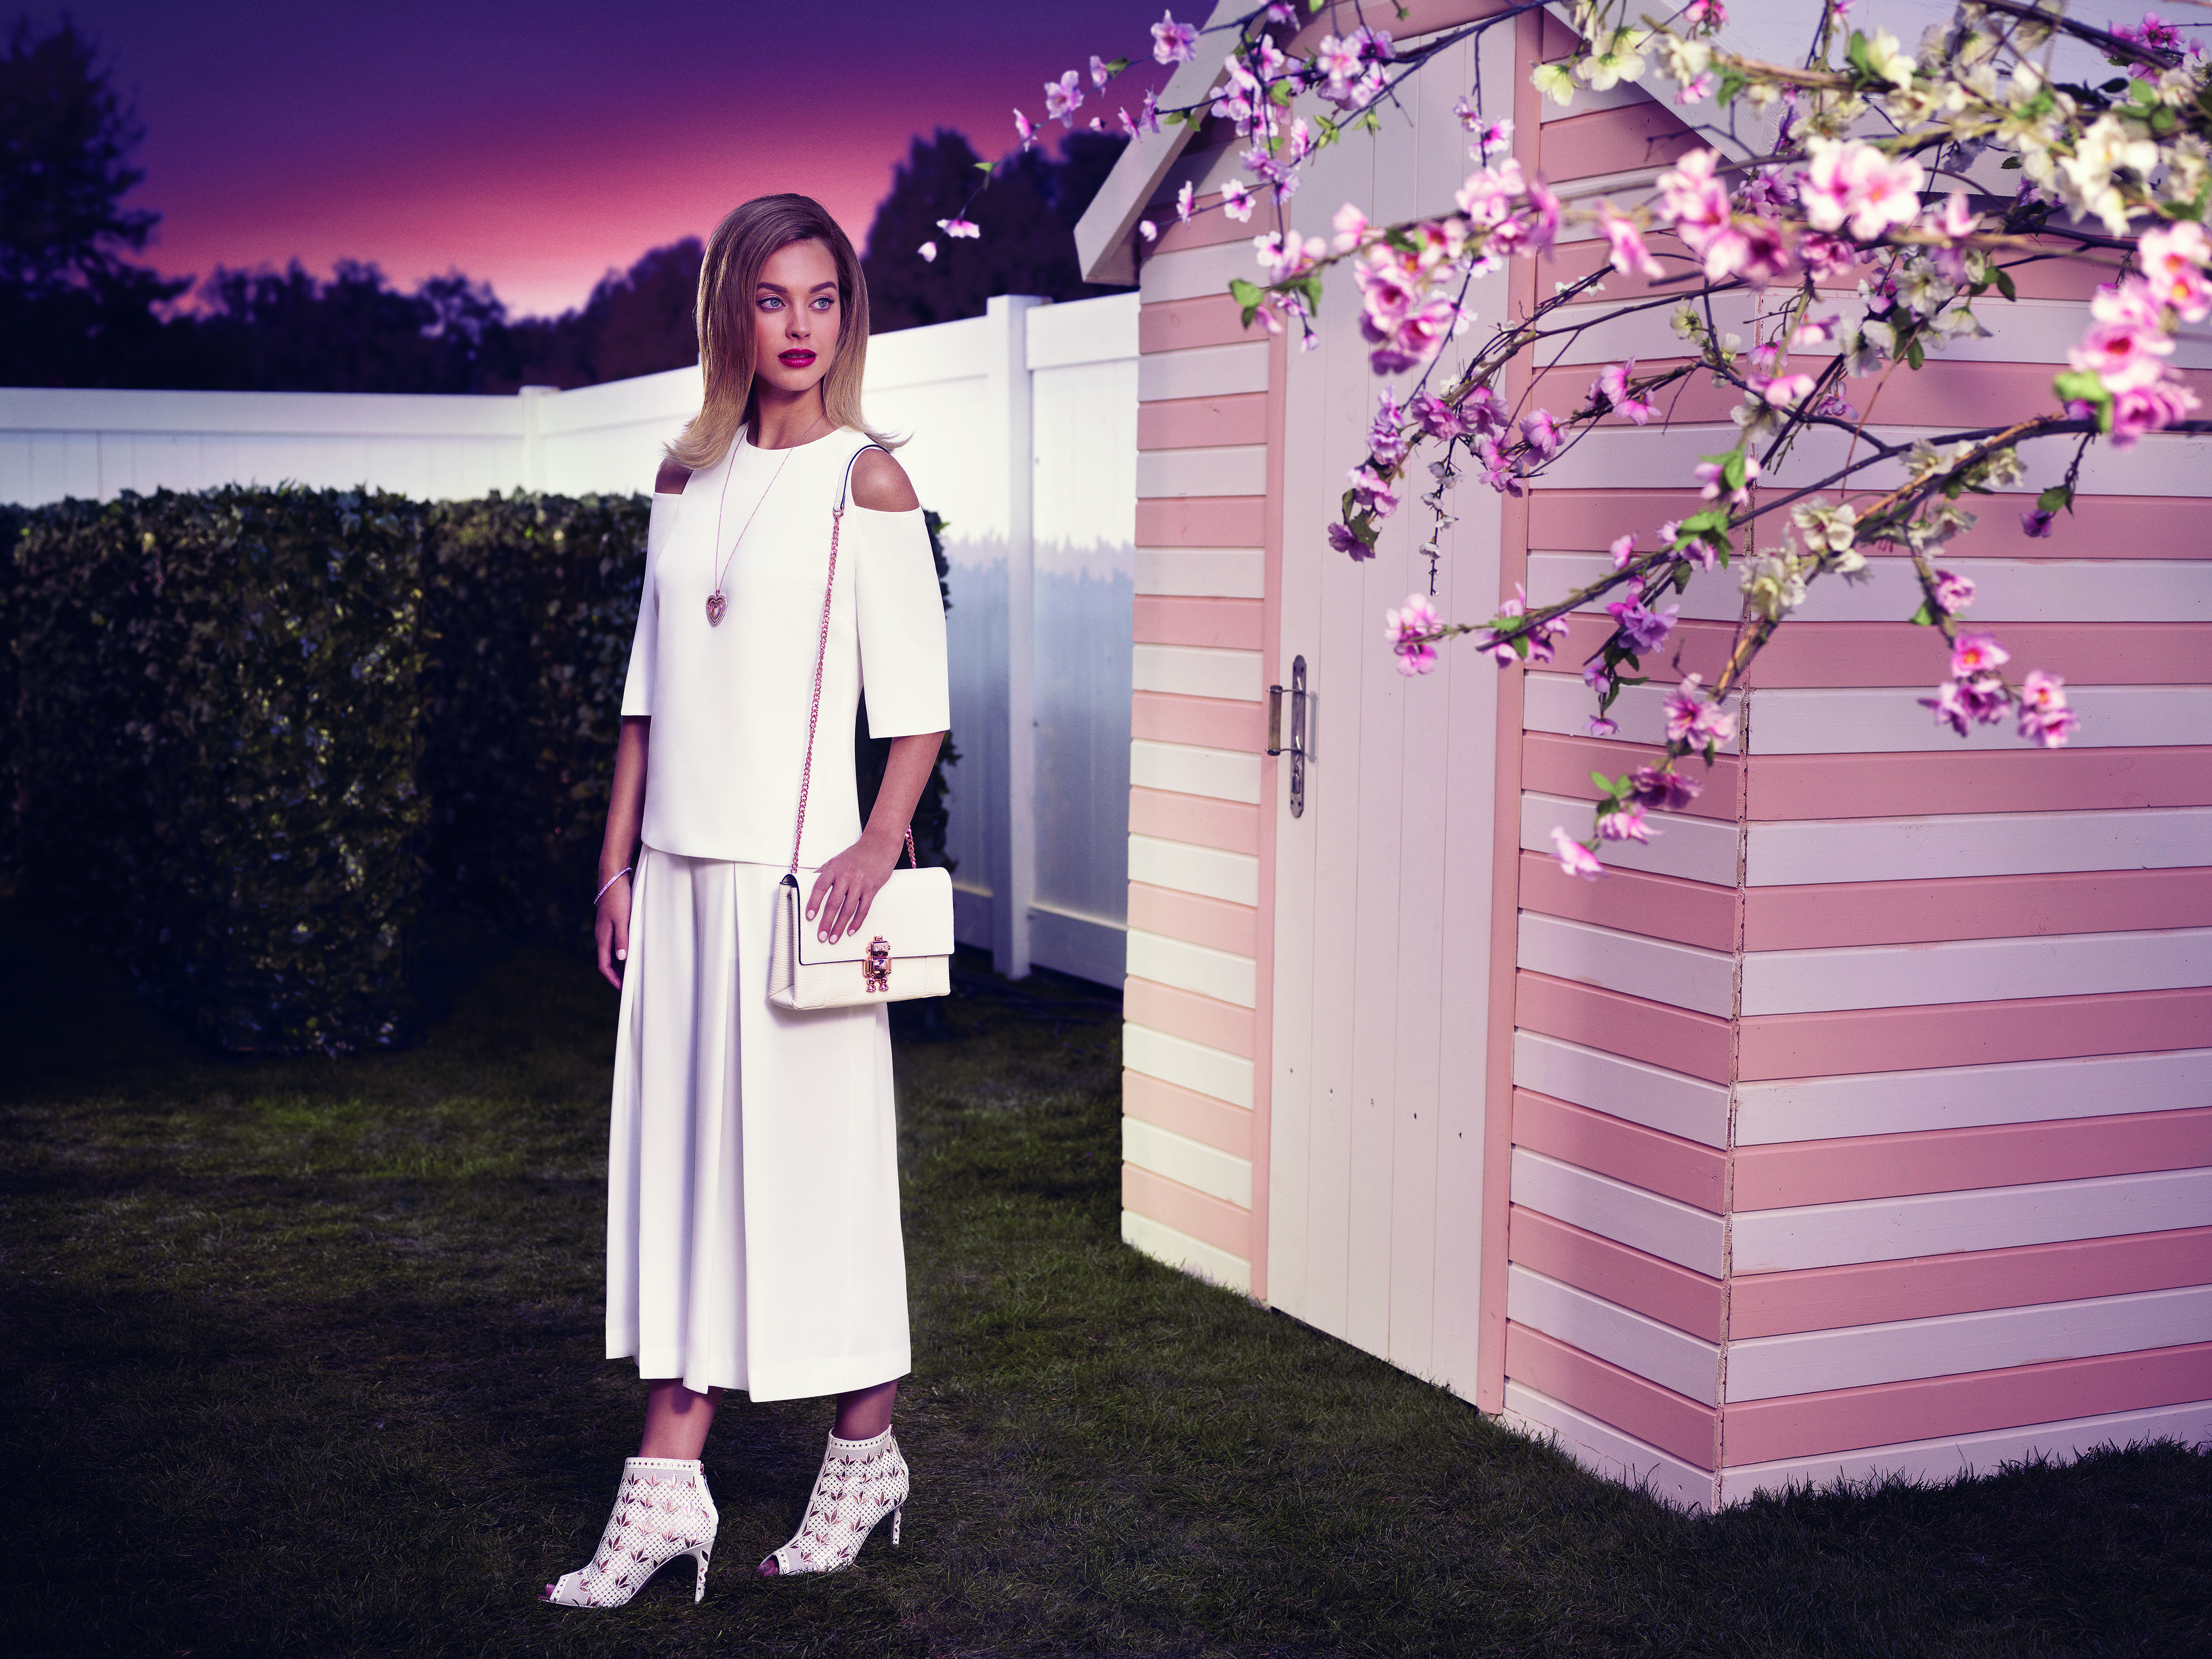 Ted Baker SS 2017 Ad Campaign 22